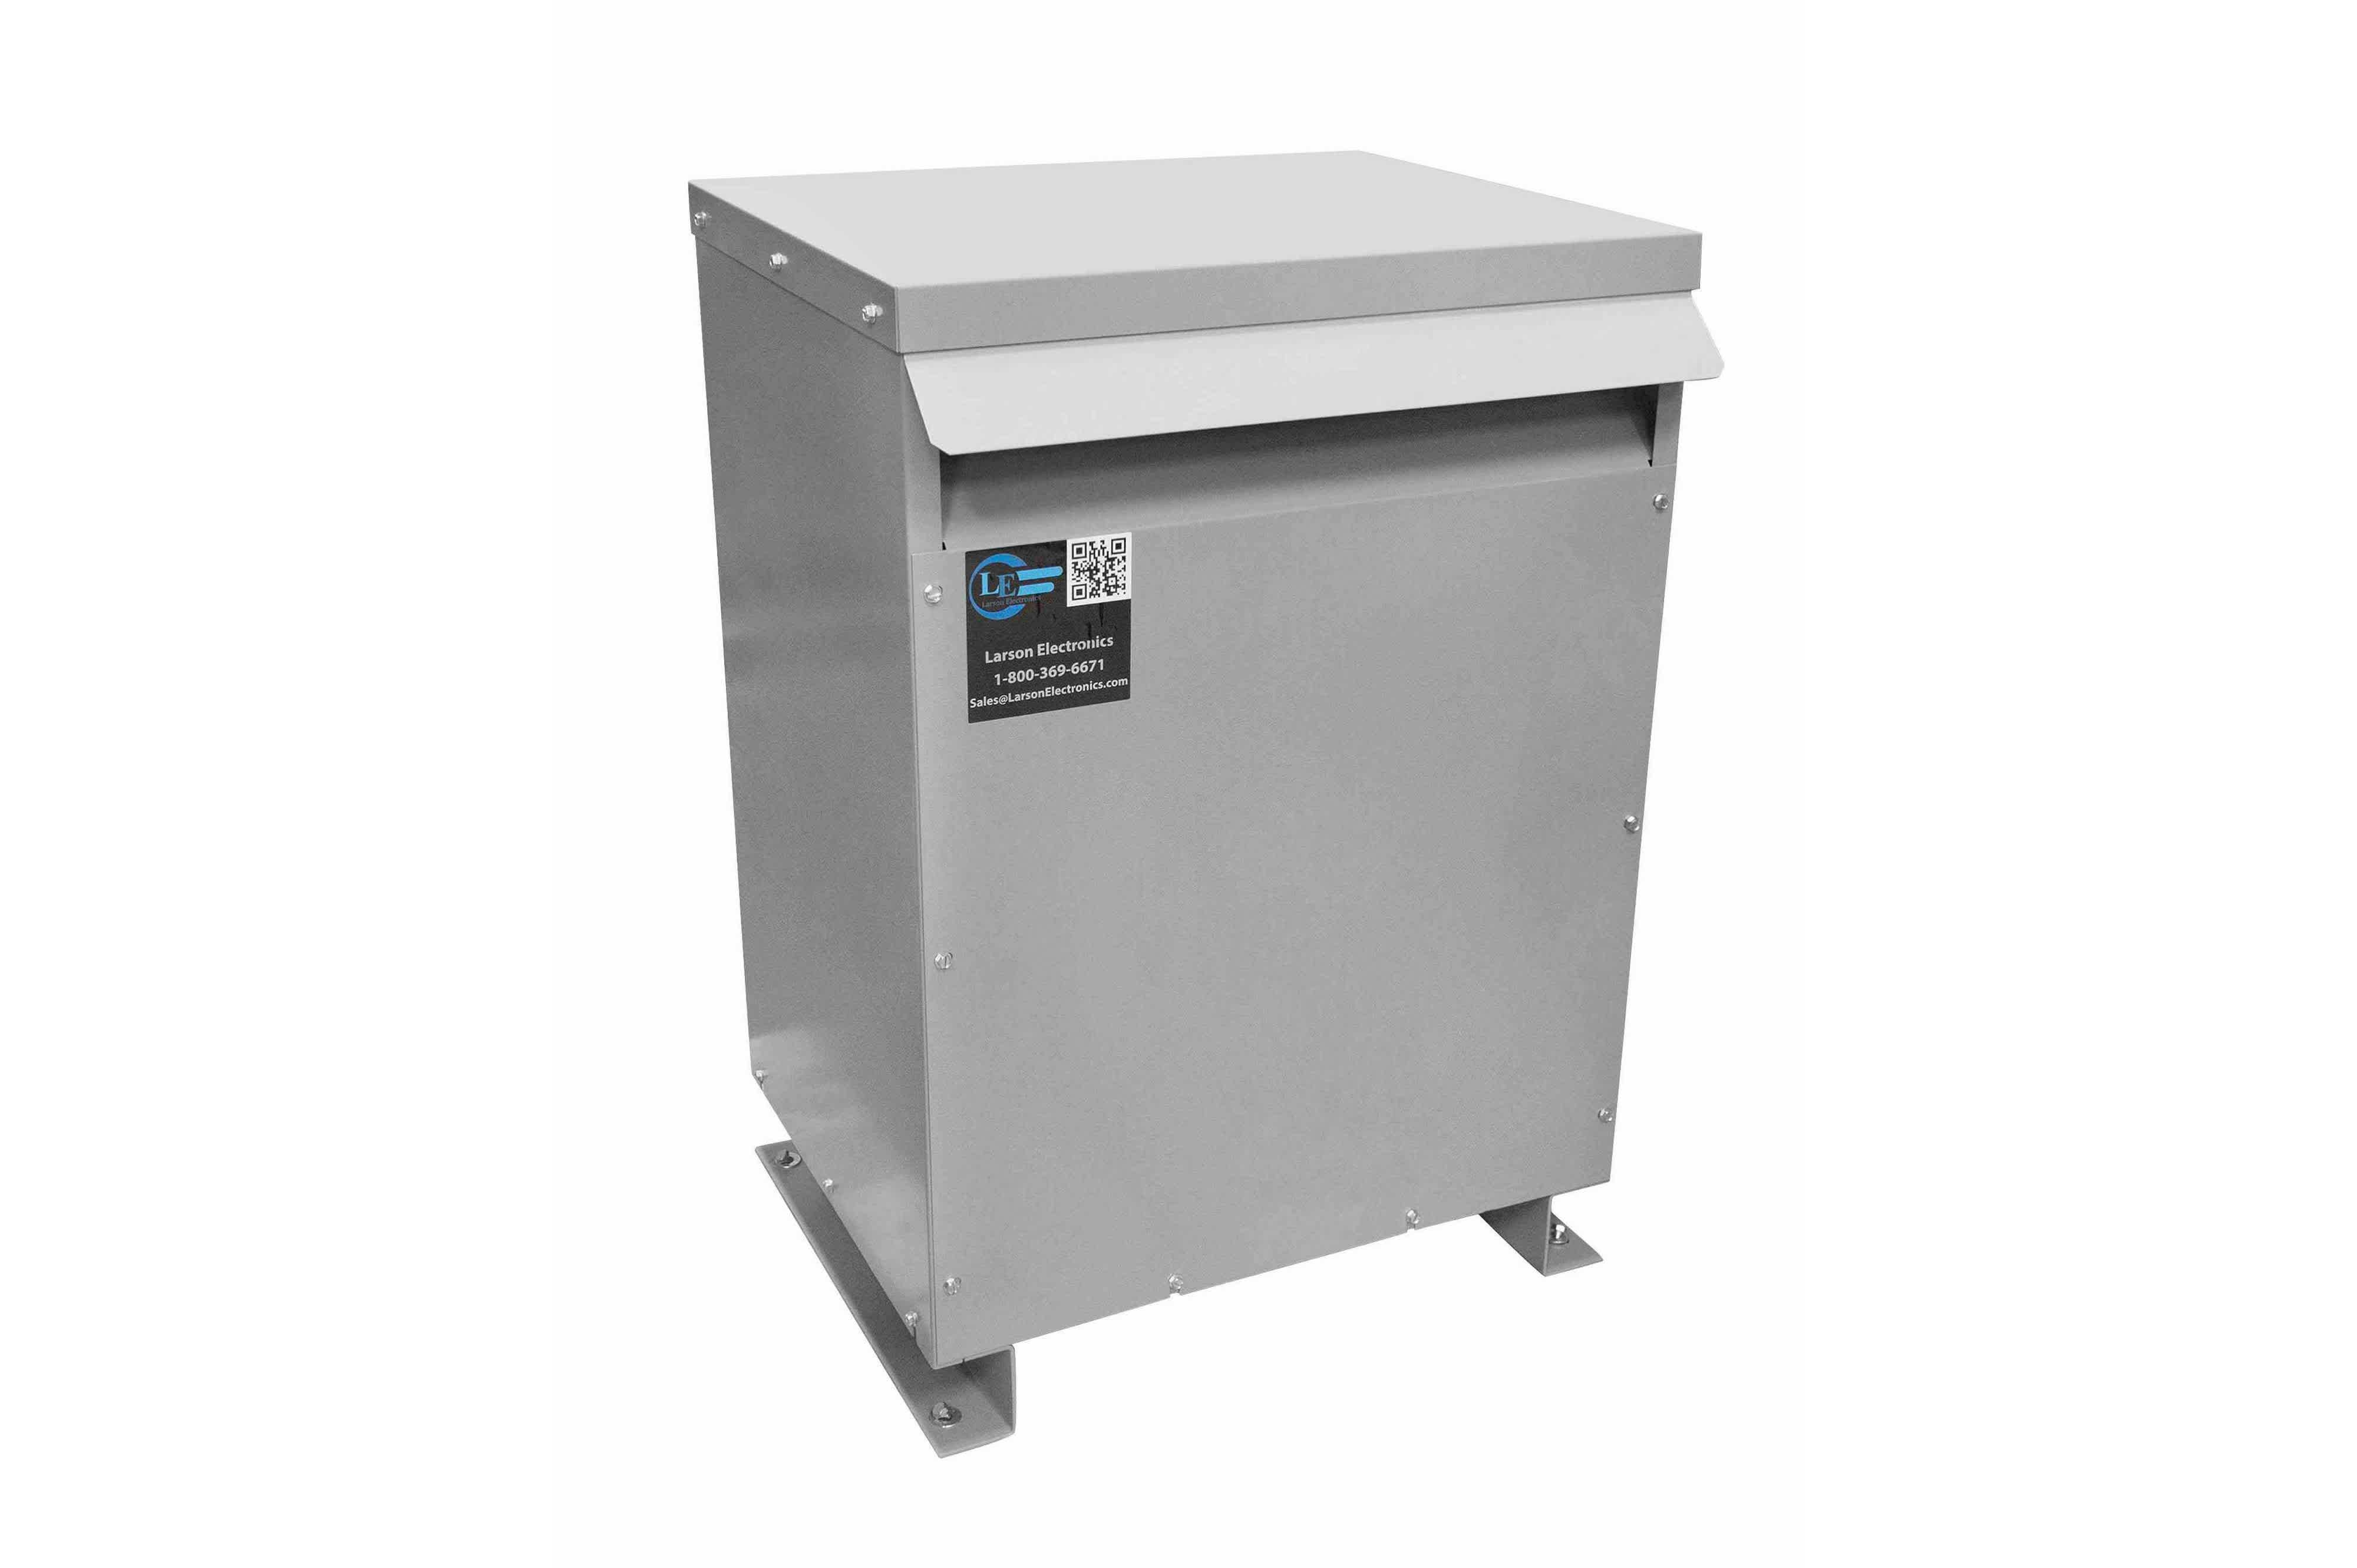 47.5 kVA 3PH Isolation Transformer, 440V Wye Primary, 240V/120 Delta Secondary, N3R, Ventilated, 60 Hz